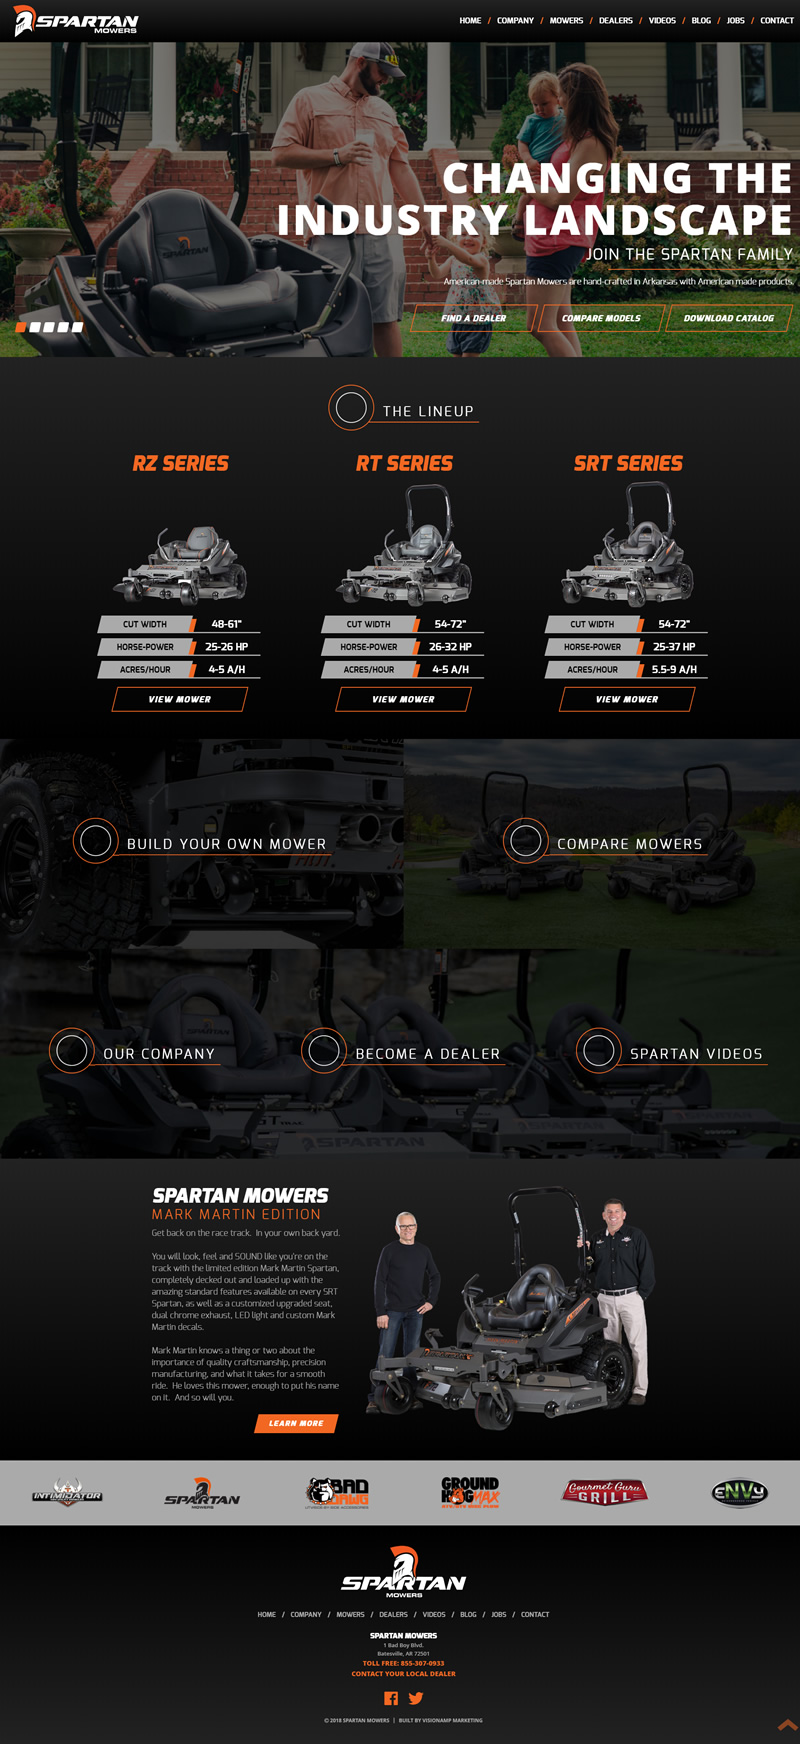 Spartan Mowers Full Web Design Image